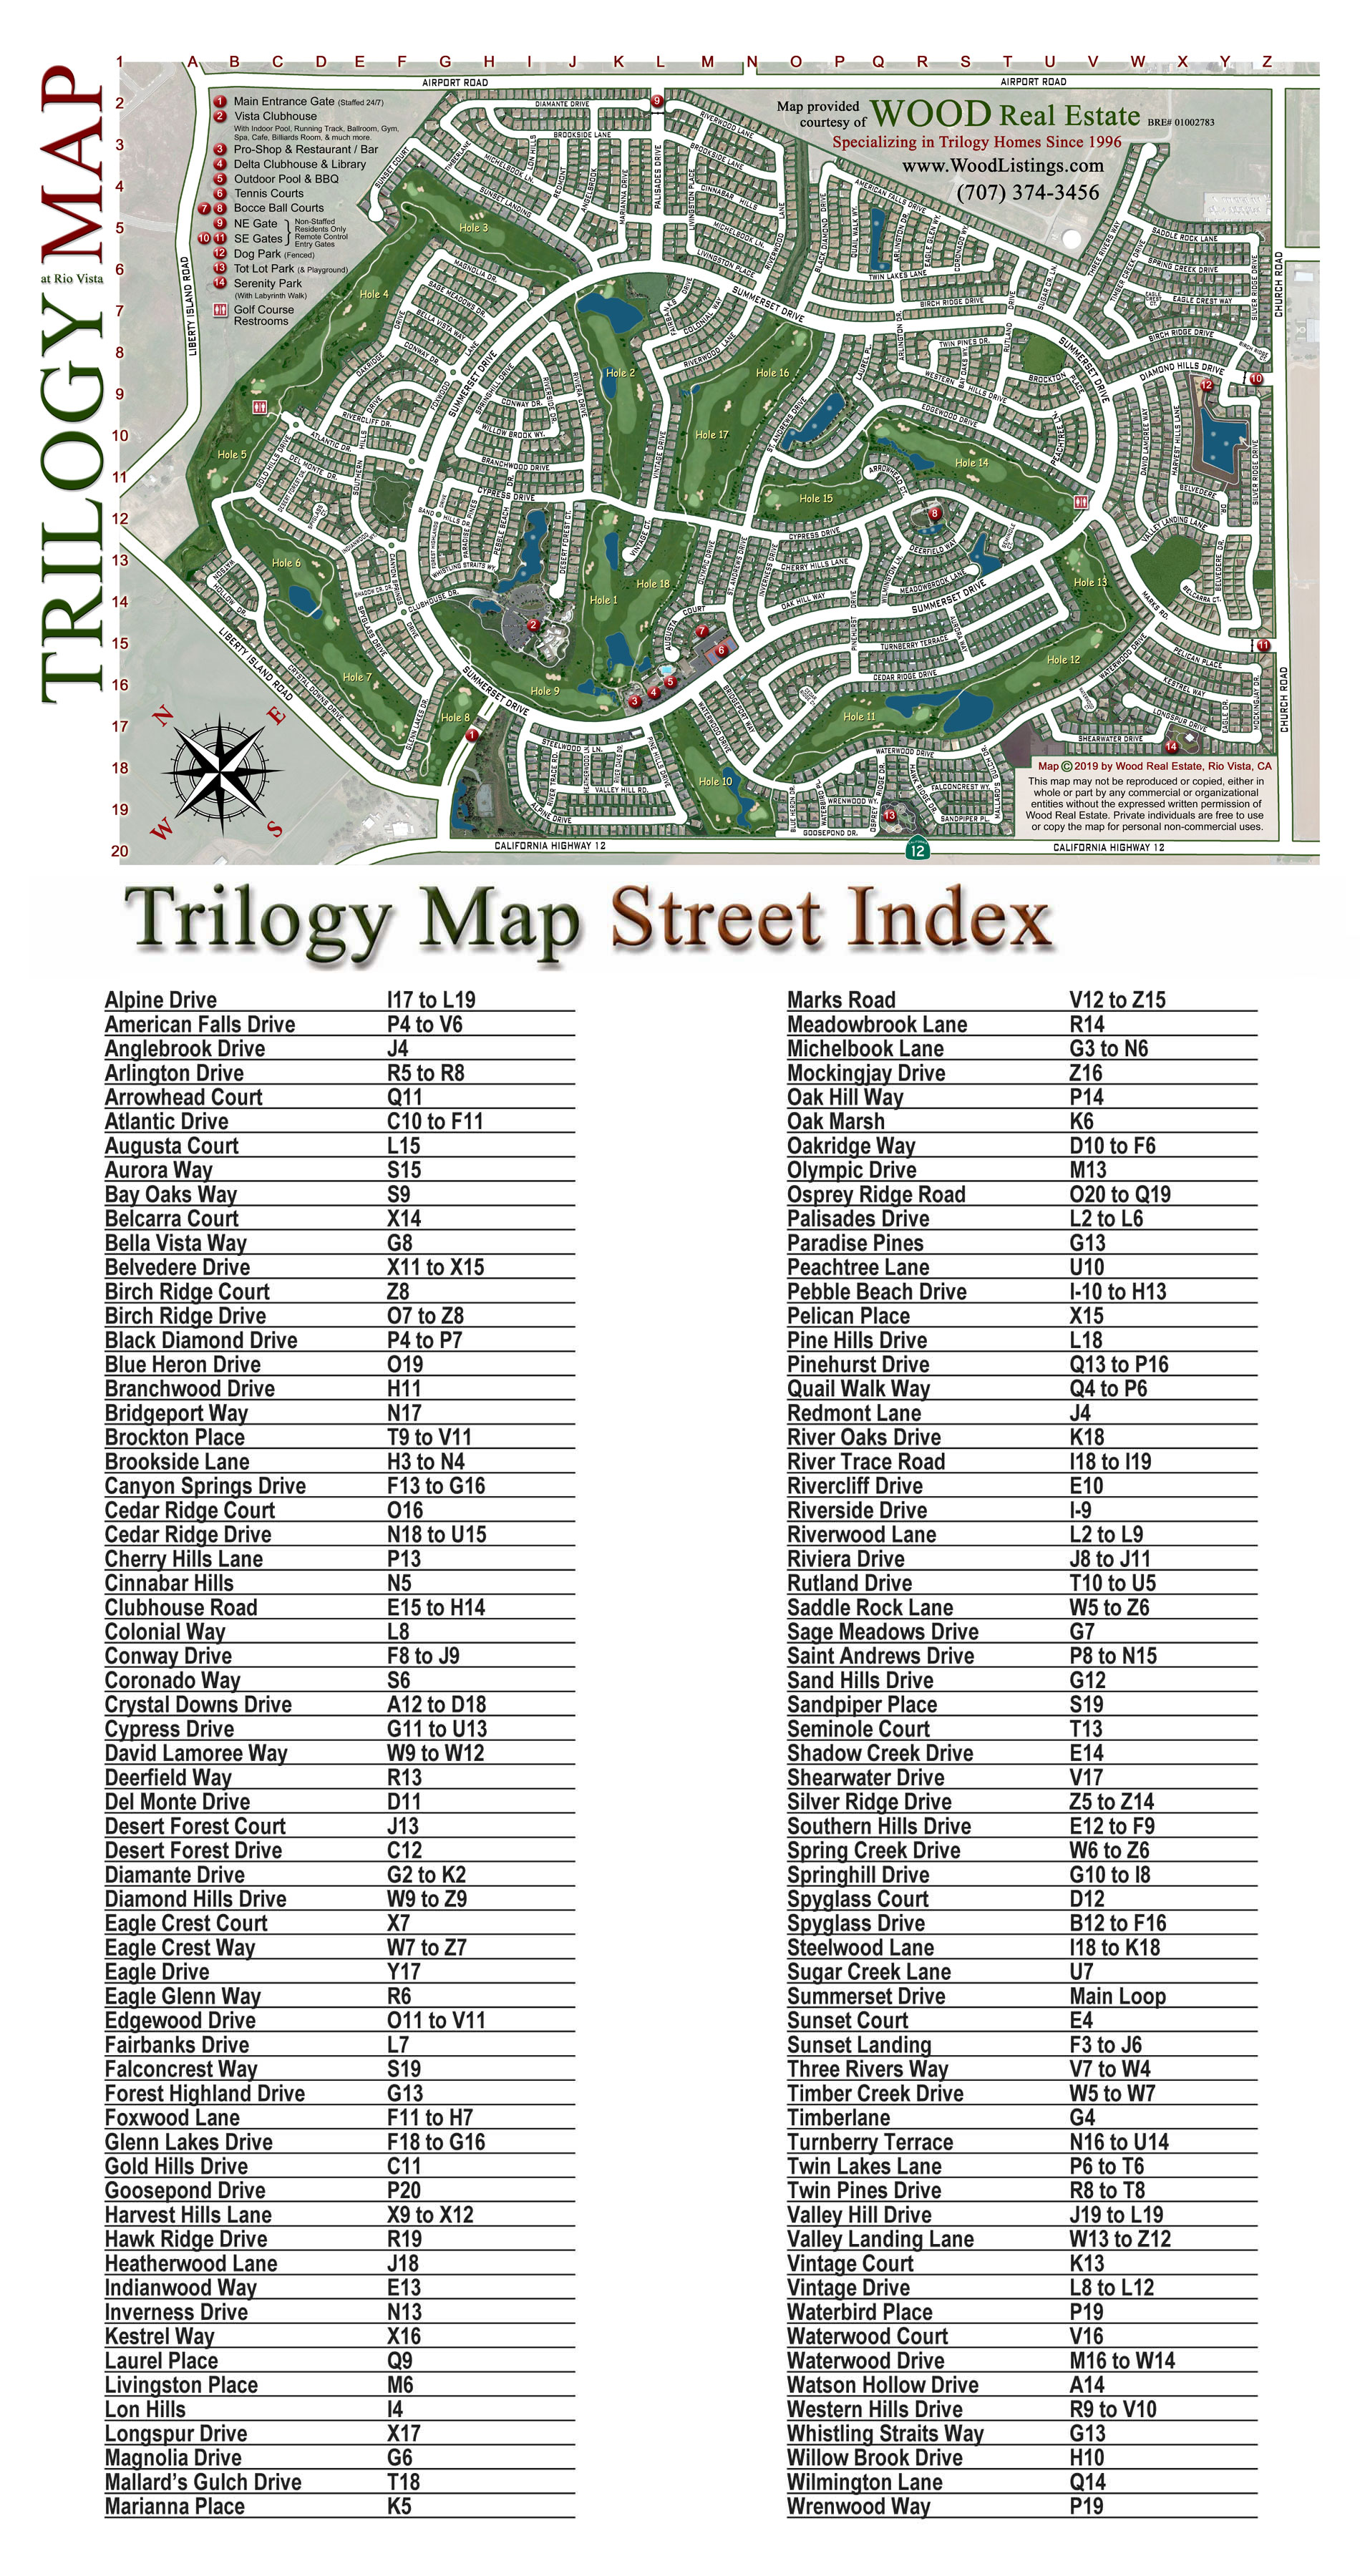 Wood Real Estate's Exclusive 2017 Trilogy Map with Street Index